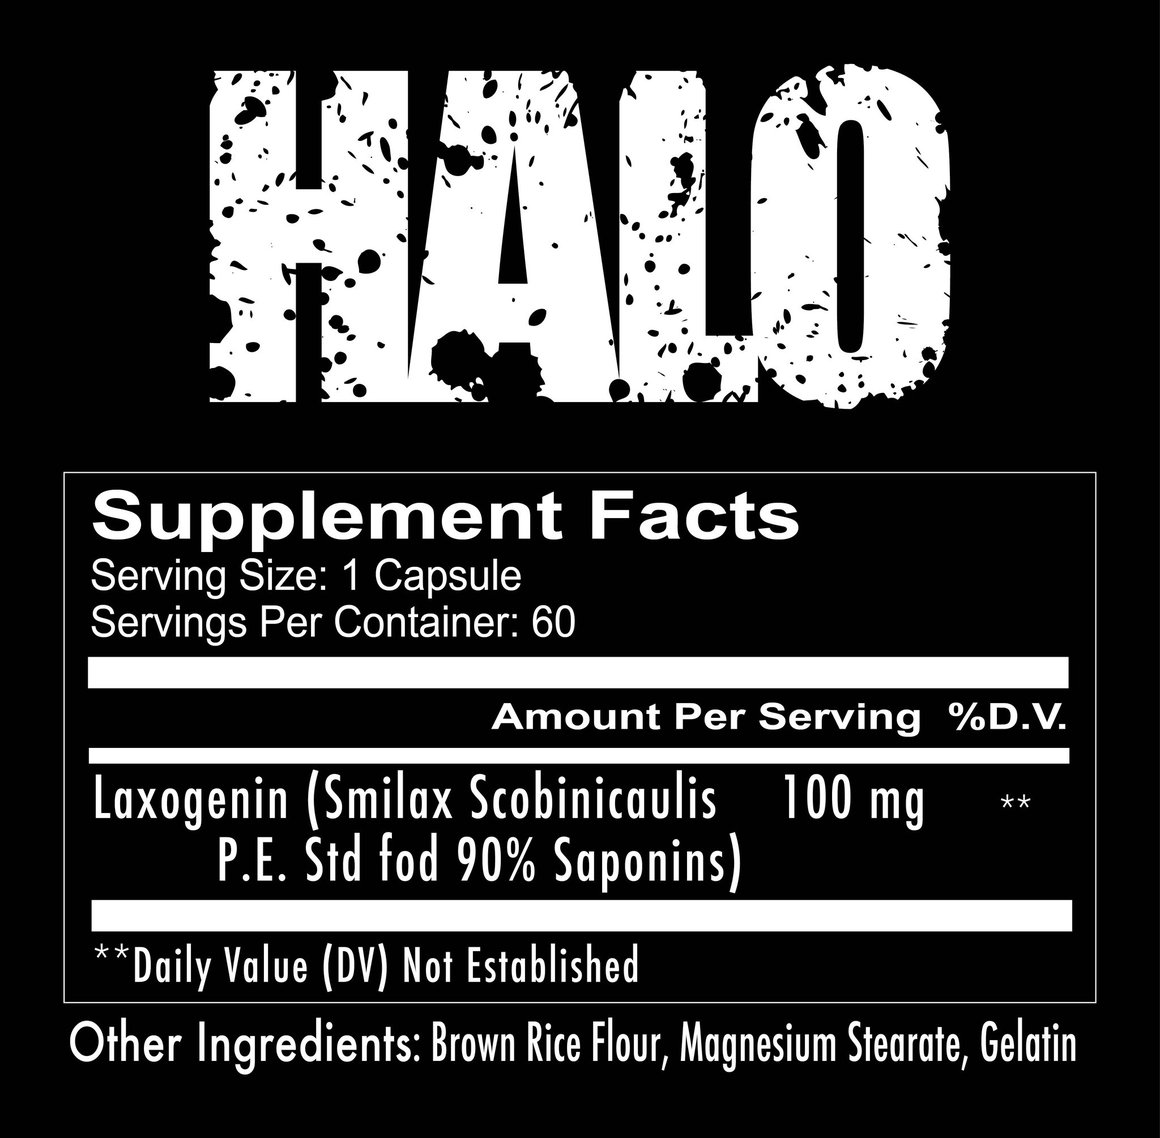 supplements-halo-natural-anabolic-2_580x@2x.jpg